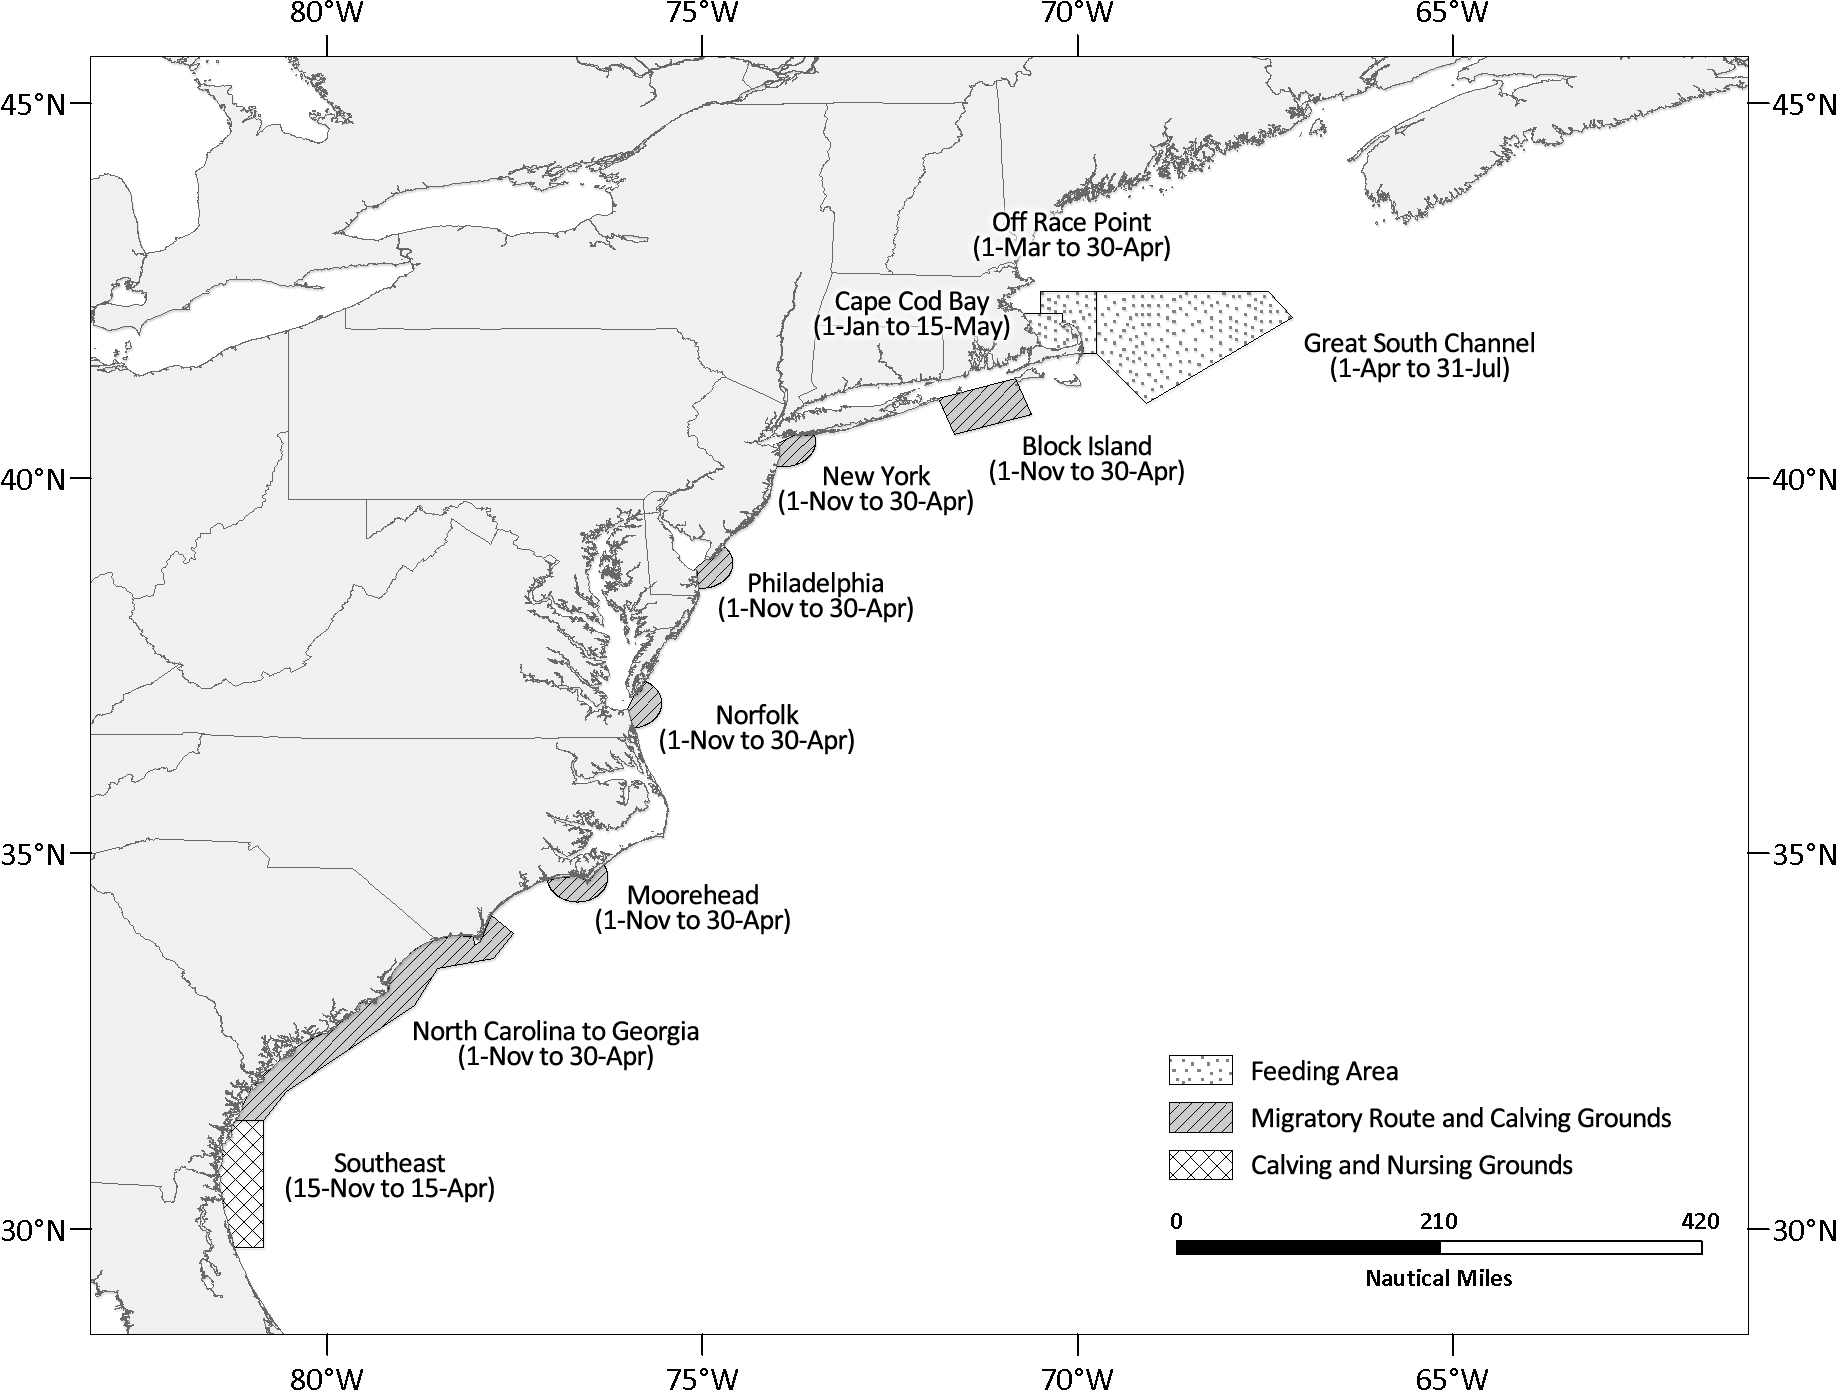 hight resolution of figure 1 map depicting the location and active periods of the north atlantic right whale seasonal management areas smas